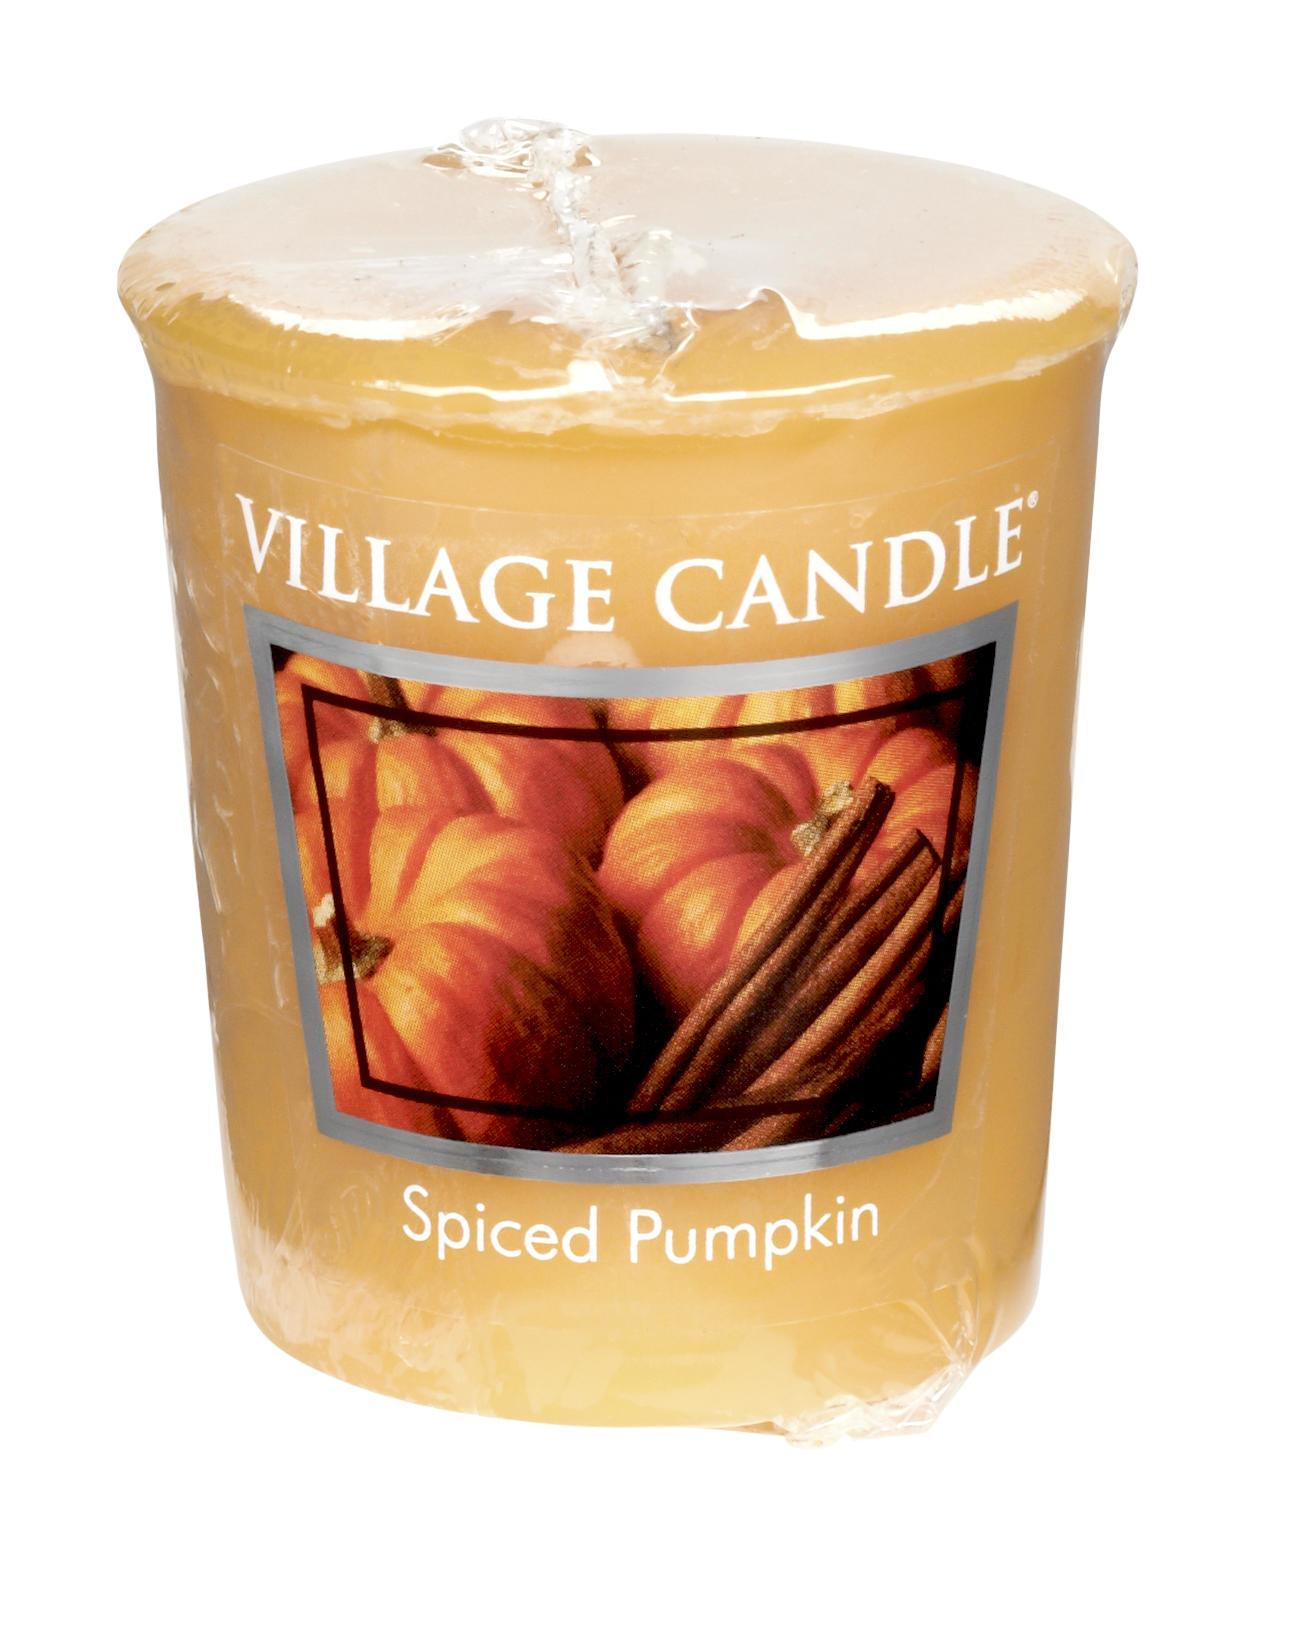 Village Candle Votivní svíčka Village Candle - Spiced Pumpkin